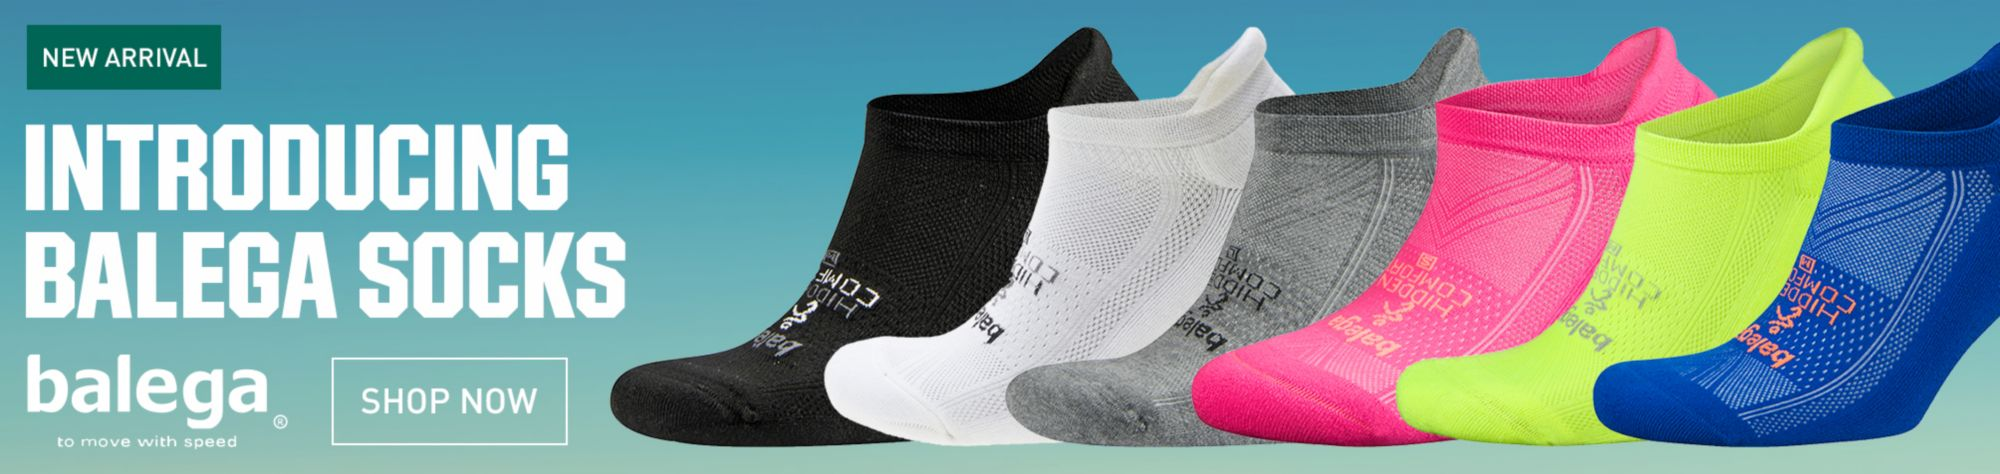 Introducing Balega Socks